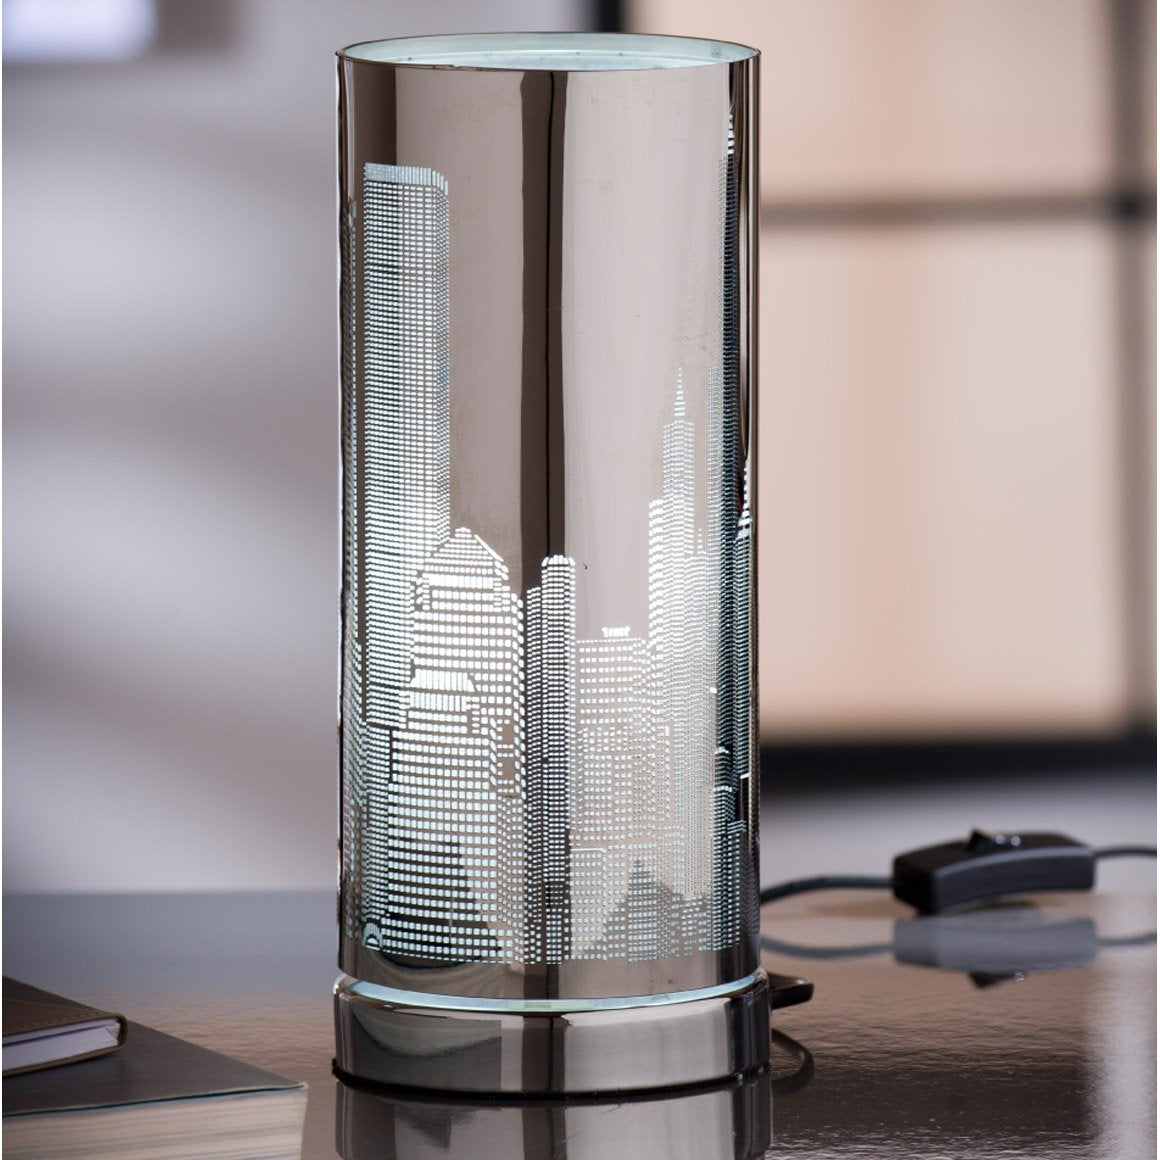 Lampe de chevet new york conforama images - Lampe baladeuse leroy merlin ...